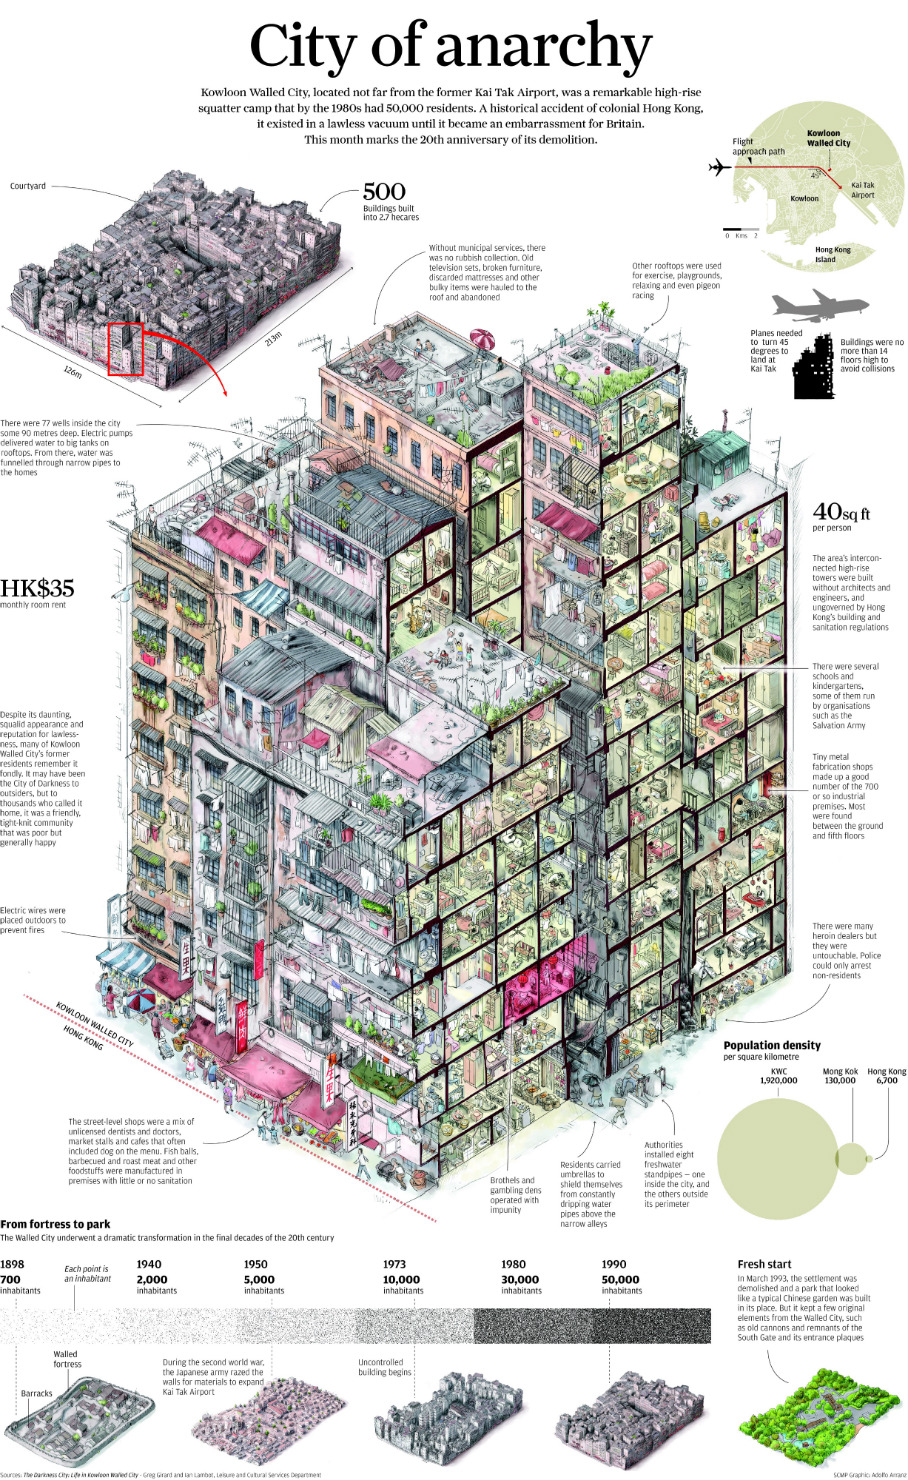 It's been twenty years since the demolition of the Kowloon Walled City. To mark this anniversary, the South China Morning Post has created an info-graphic that details the facts and figures of what life was like inside this architectural oddity.  For the best part of the 20th century, the walled city was like a glitch in the urban fabric of Hong Kong; a solid 2.7 hectare block of unrestrained city and the most densely populated place on earth. The height of the Walled City rose with the rest of Hong Kong. In the 1950s, housing usually consisted of wooden and stone low-rises. In the '60s, concrete buildings of four or five storeys appeared. And in the '70s, many were replaced by blocks of 10 storeys or more. The site became chaotically cramped, with buildings so close to each other that in some it was impossible to open a window. (via)